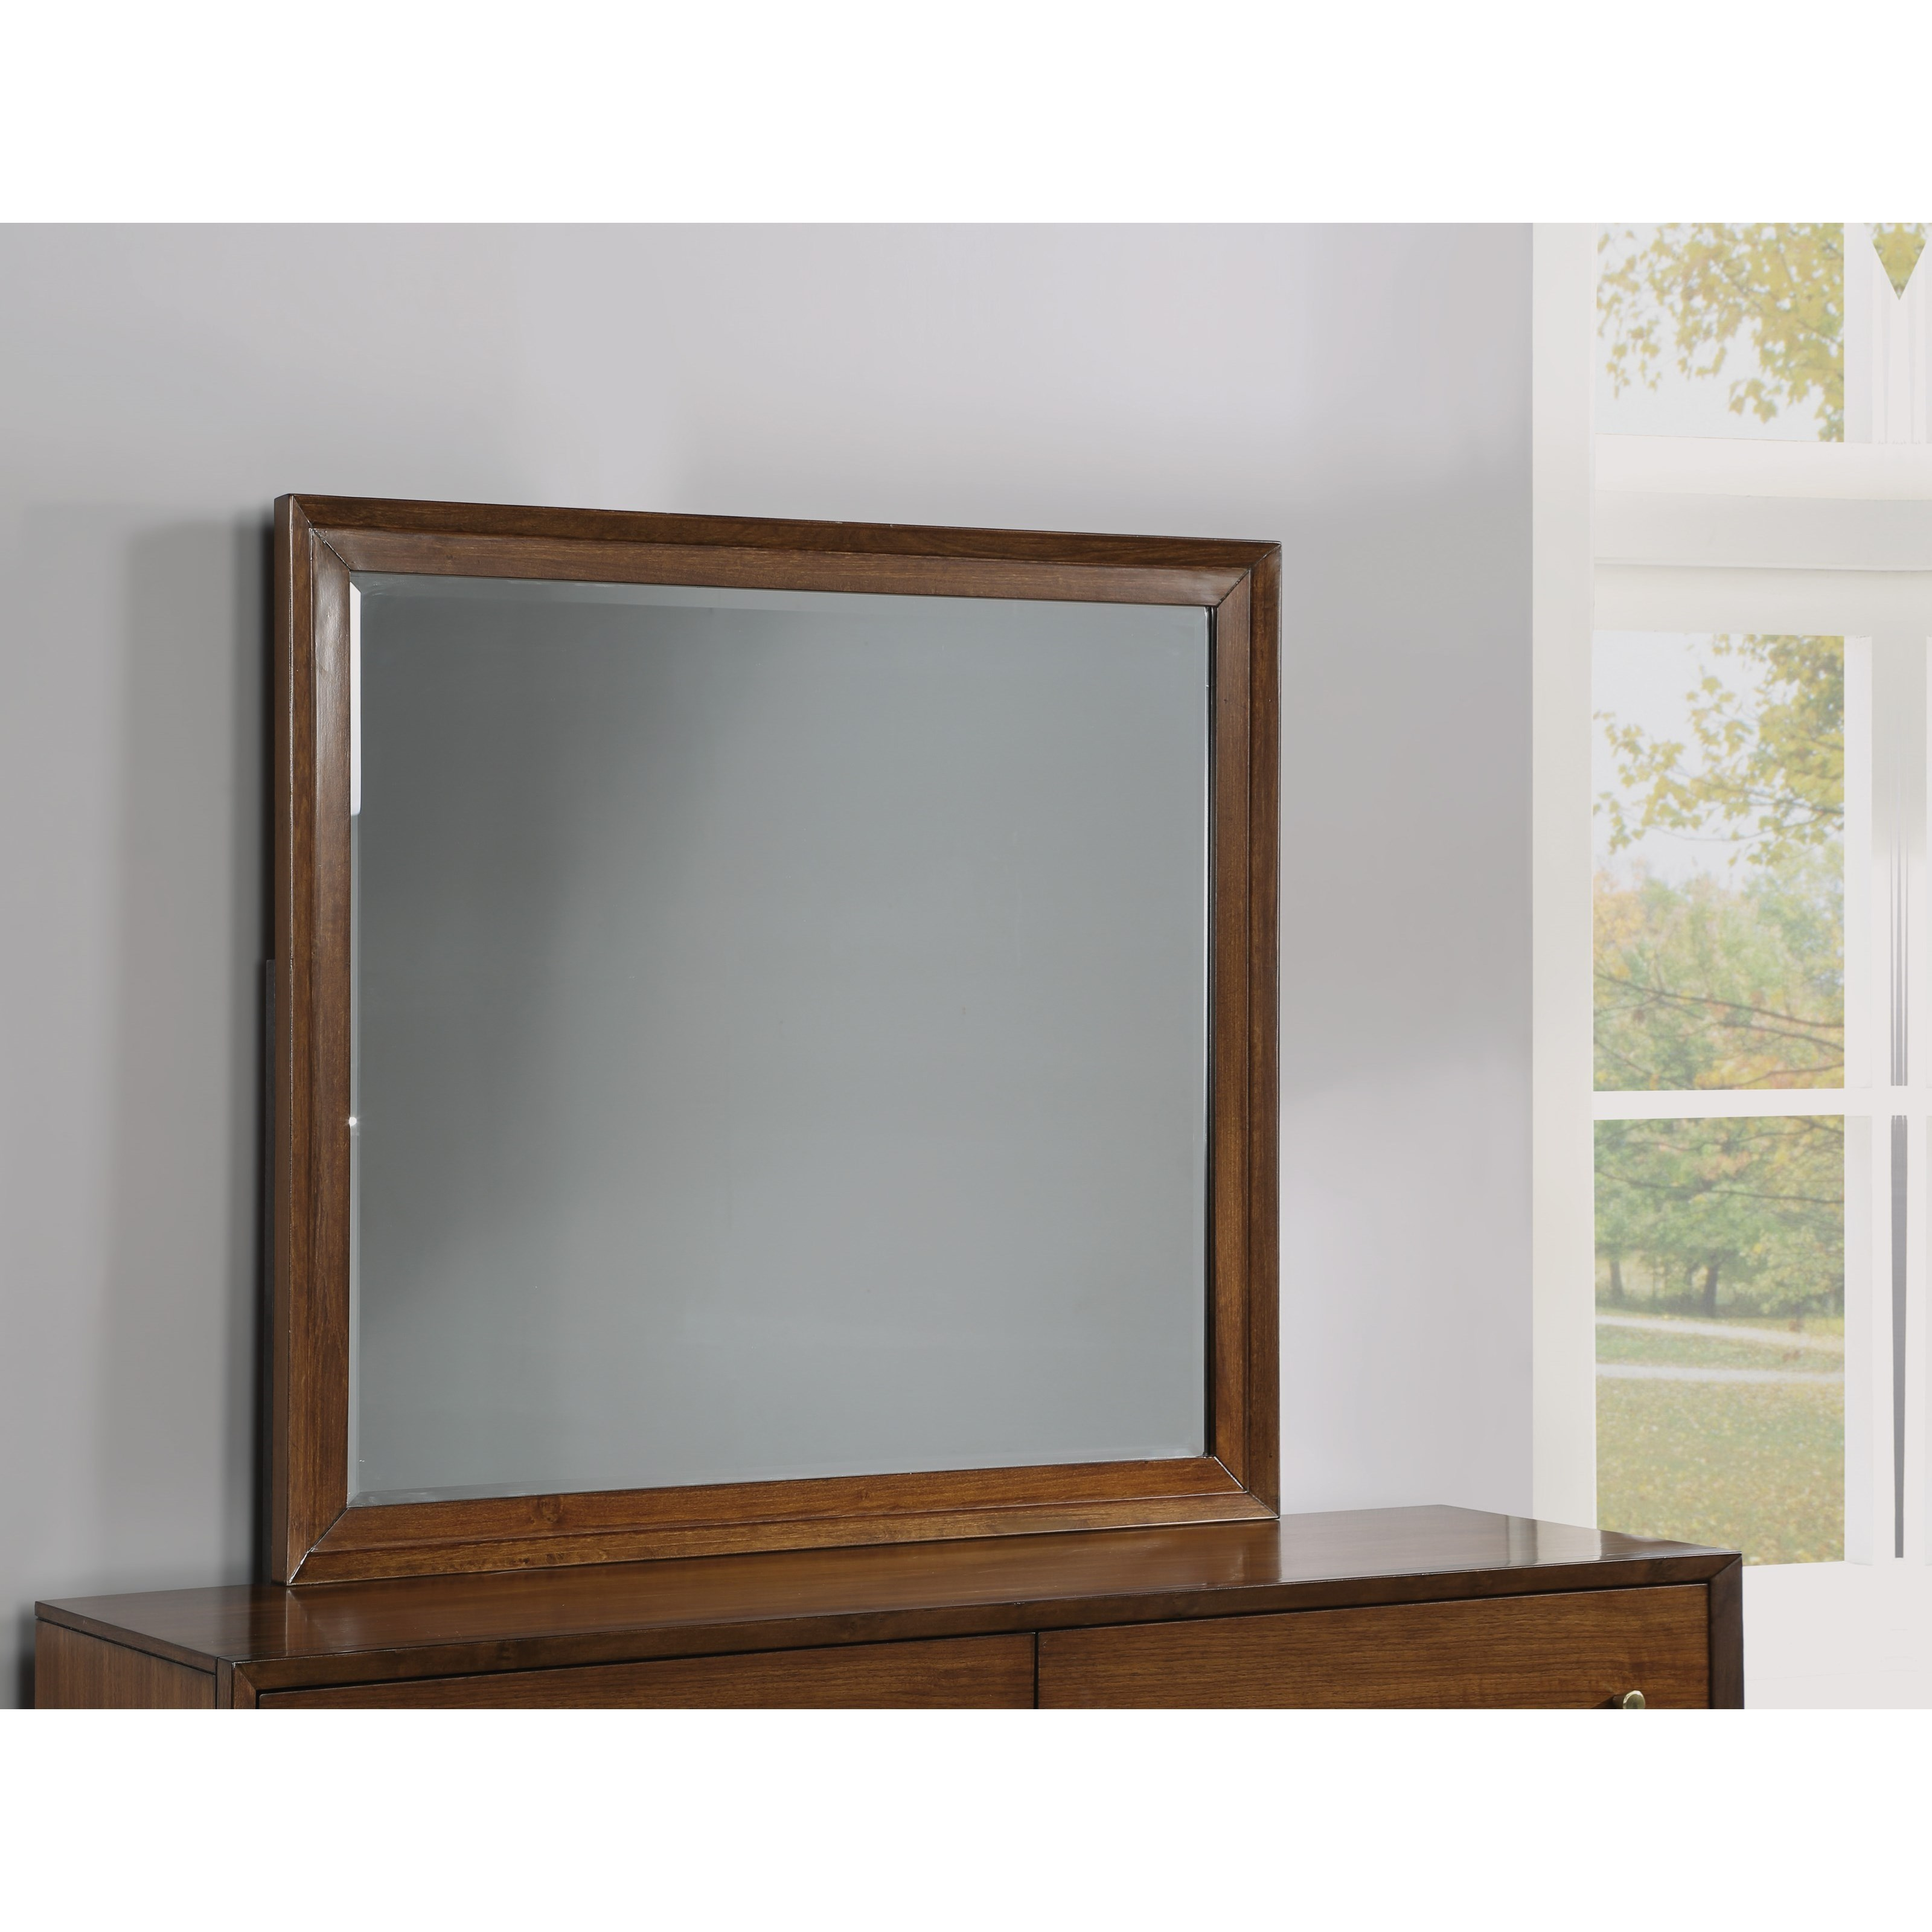 Flexsteel Wynwood Collection Ludwig W1085 880 Mid Century Modern Dresser Mirror With Beveled Glass Pilgrim Furniture City Dresser Mirrors